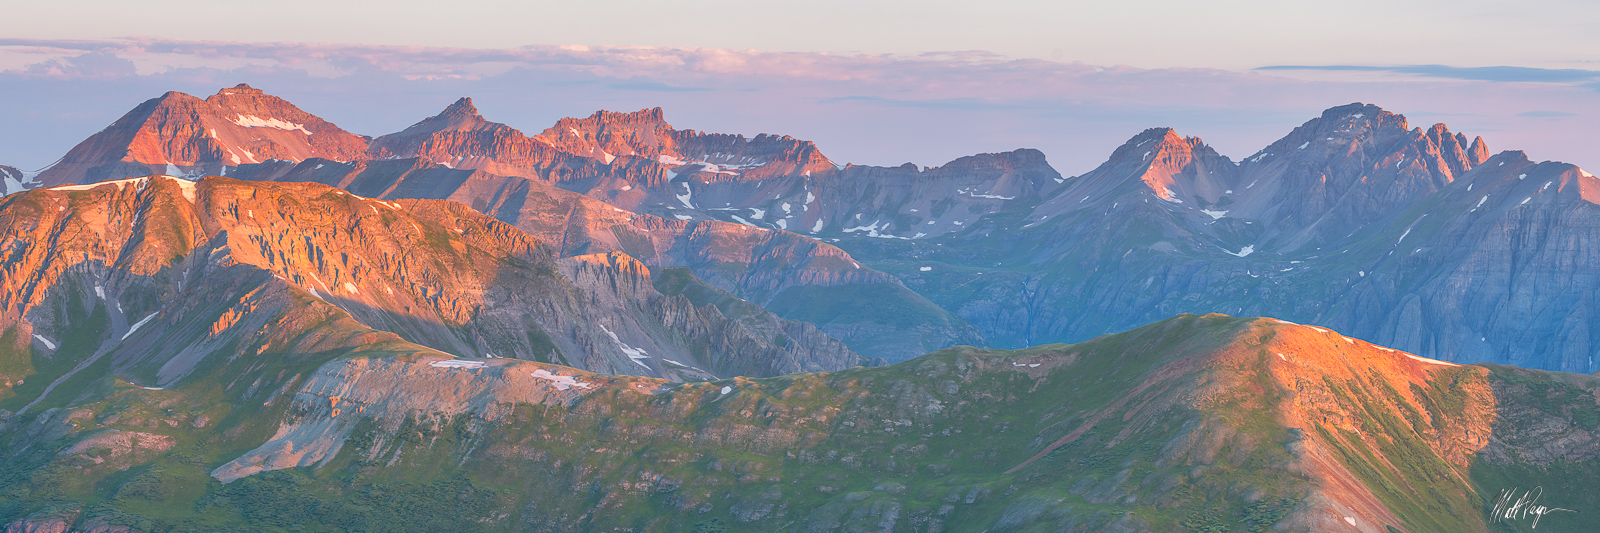 This high mountain sunrise panorama from the San Juan Mountains of Colorado features some of my favorite 13ers (mountains higher...